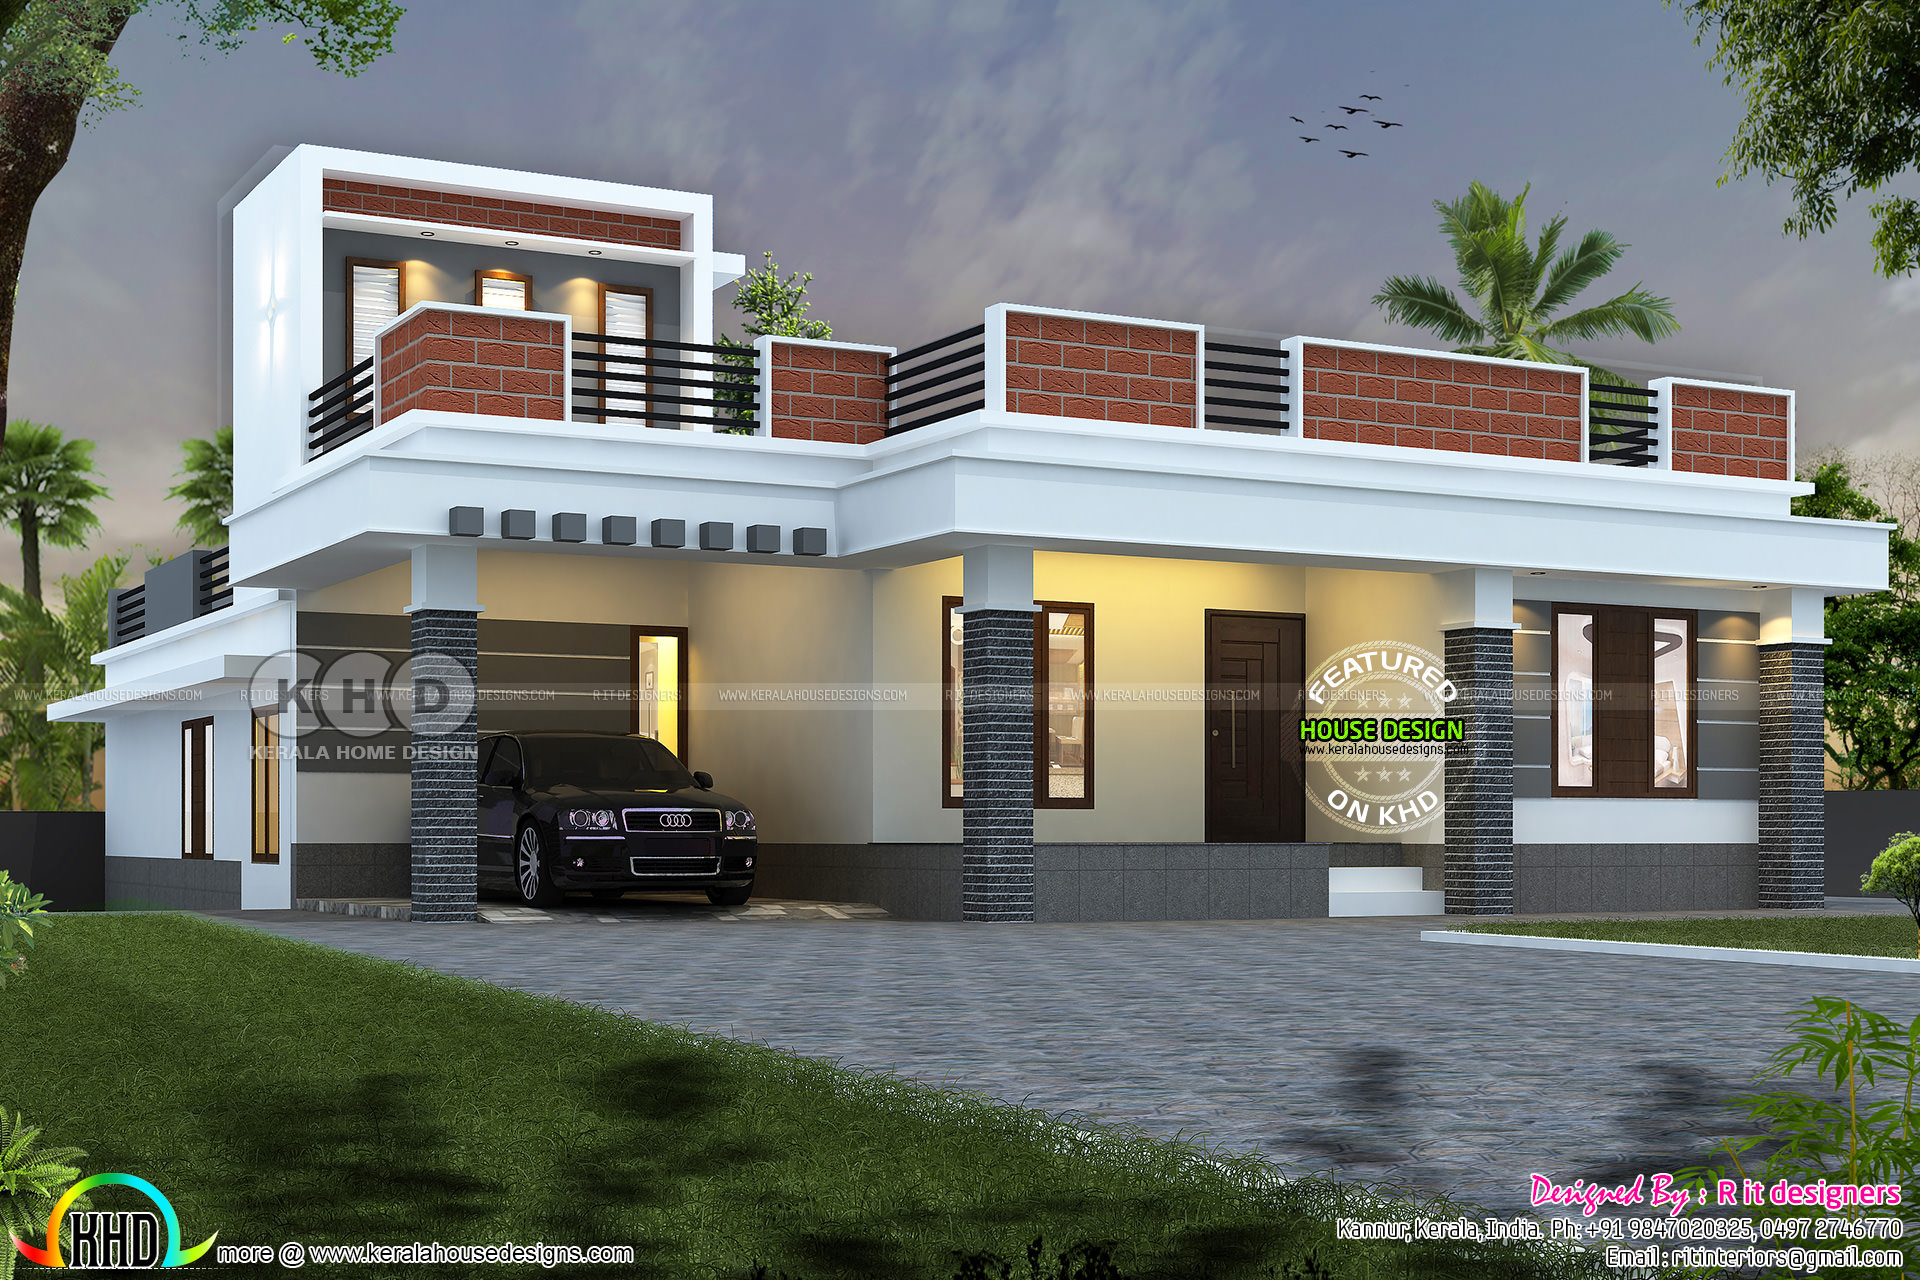 Single floor 44 000 cost estimated home design kerala for House plans with estimated cost to build in kerala